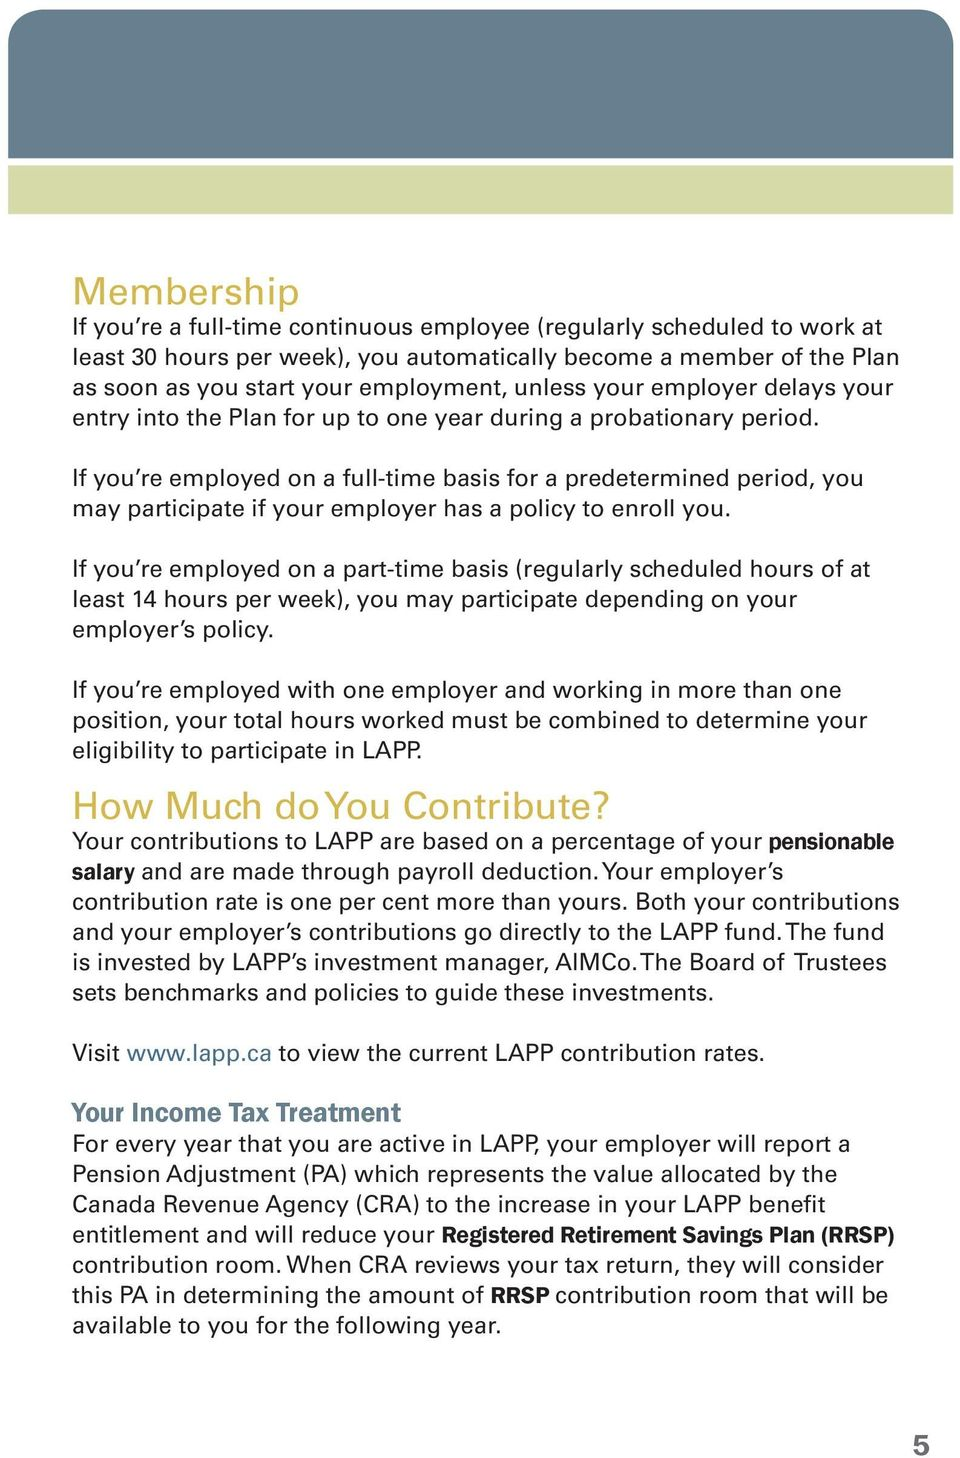 If you re employed on a full-time basis for a predetermined period, you may participate if your employer has a policy to enroll you.